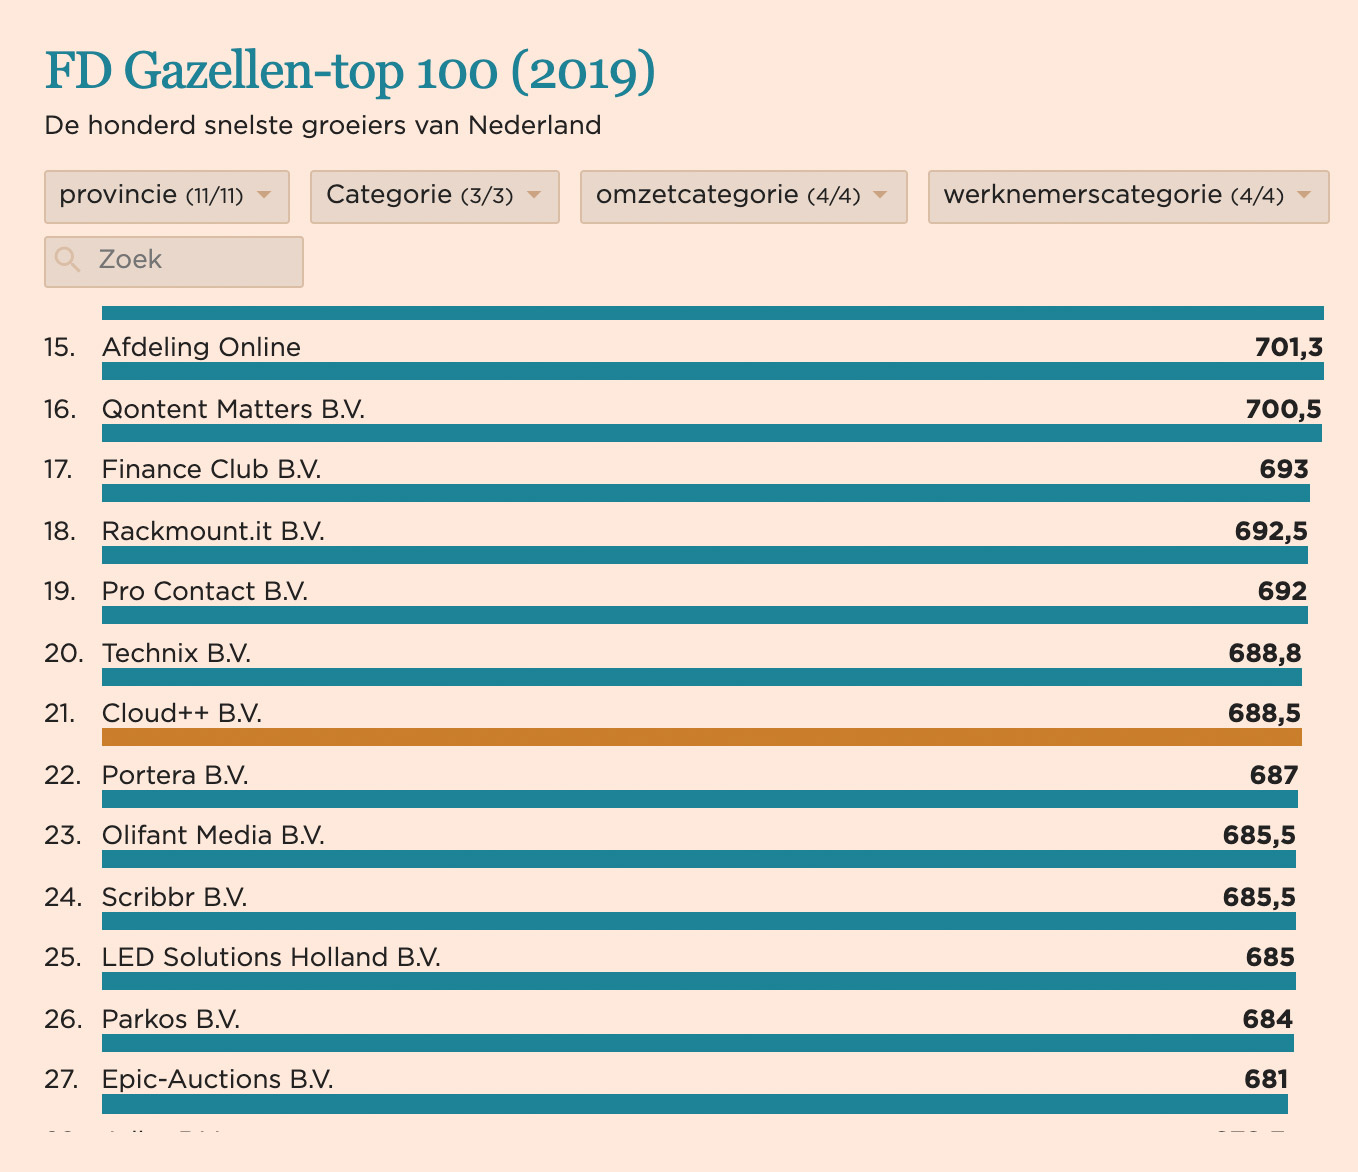 FD Gazellen-top 100 - Cloud++ 21e